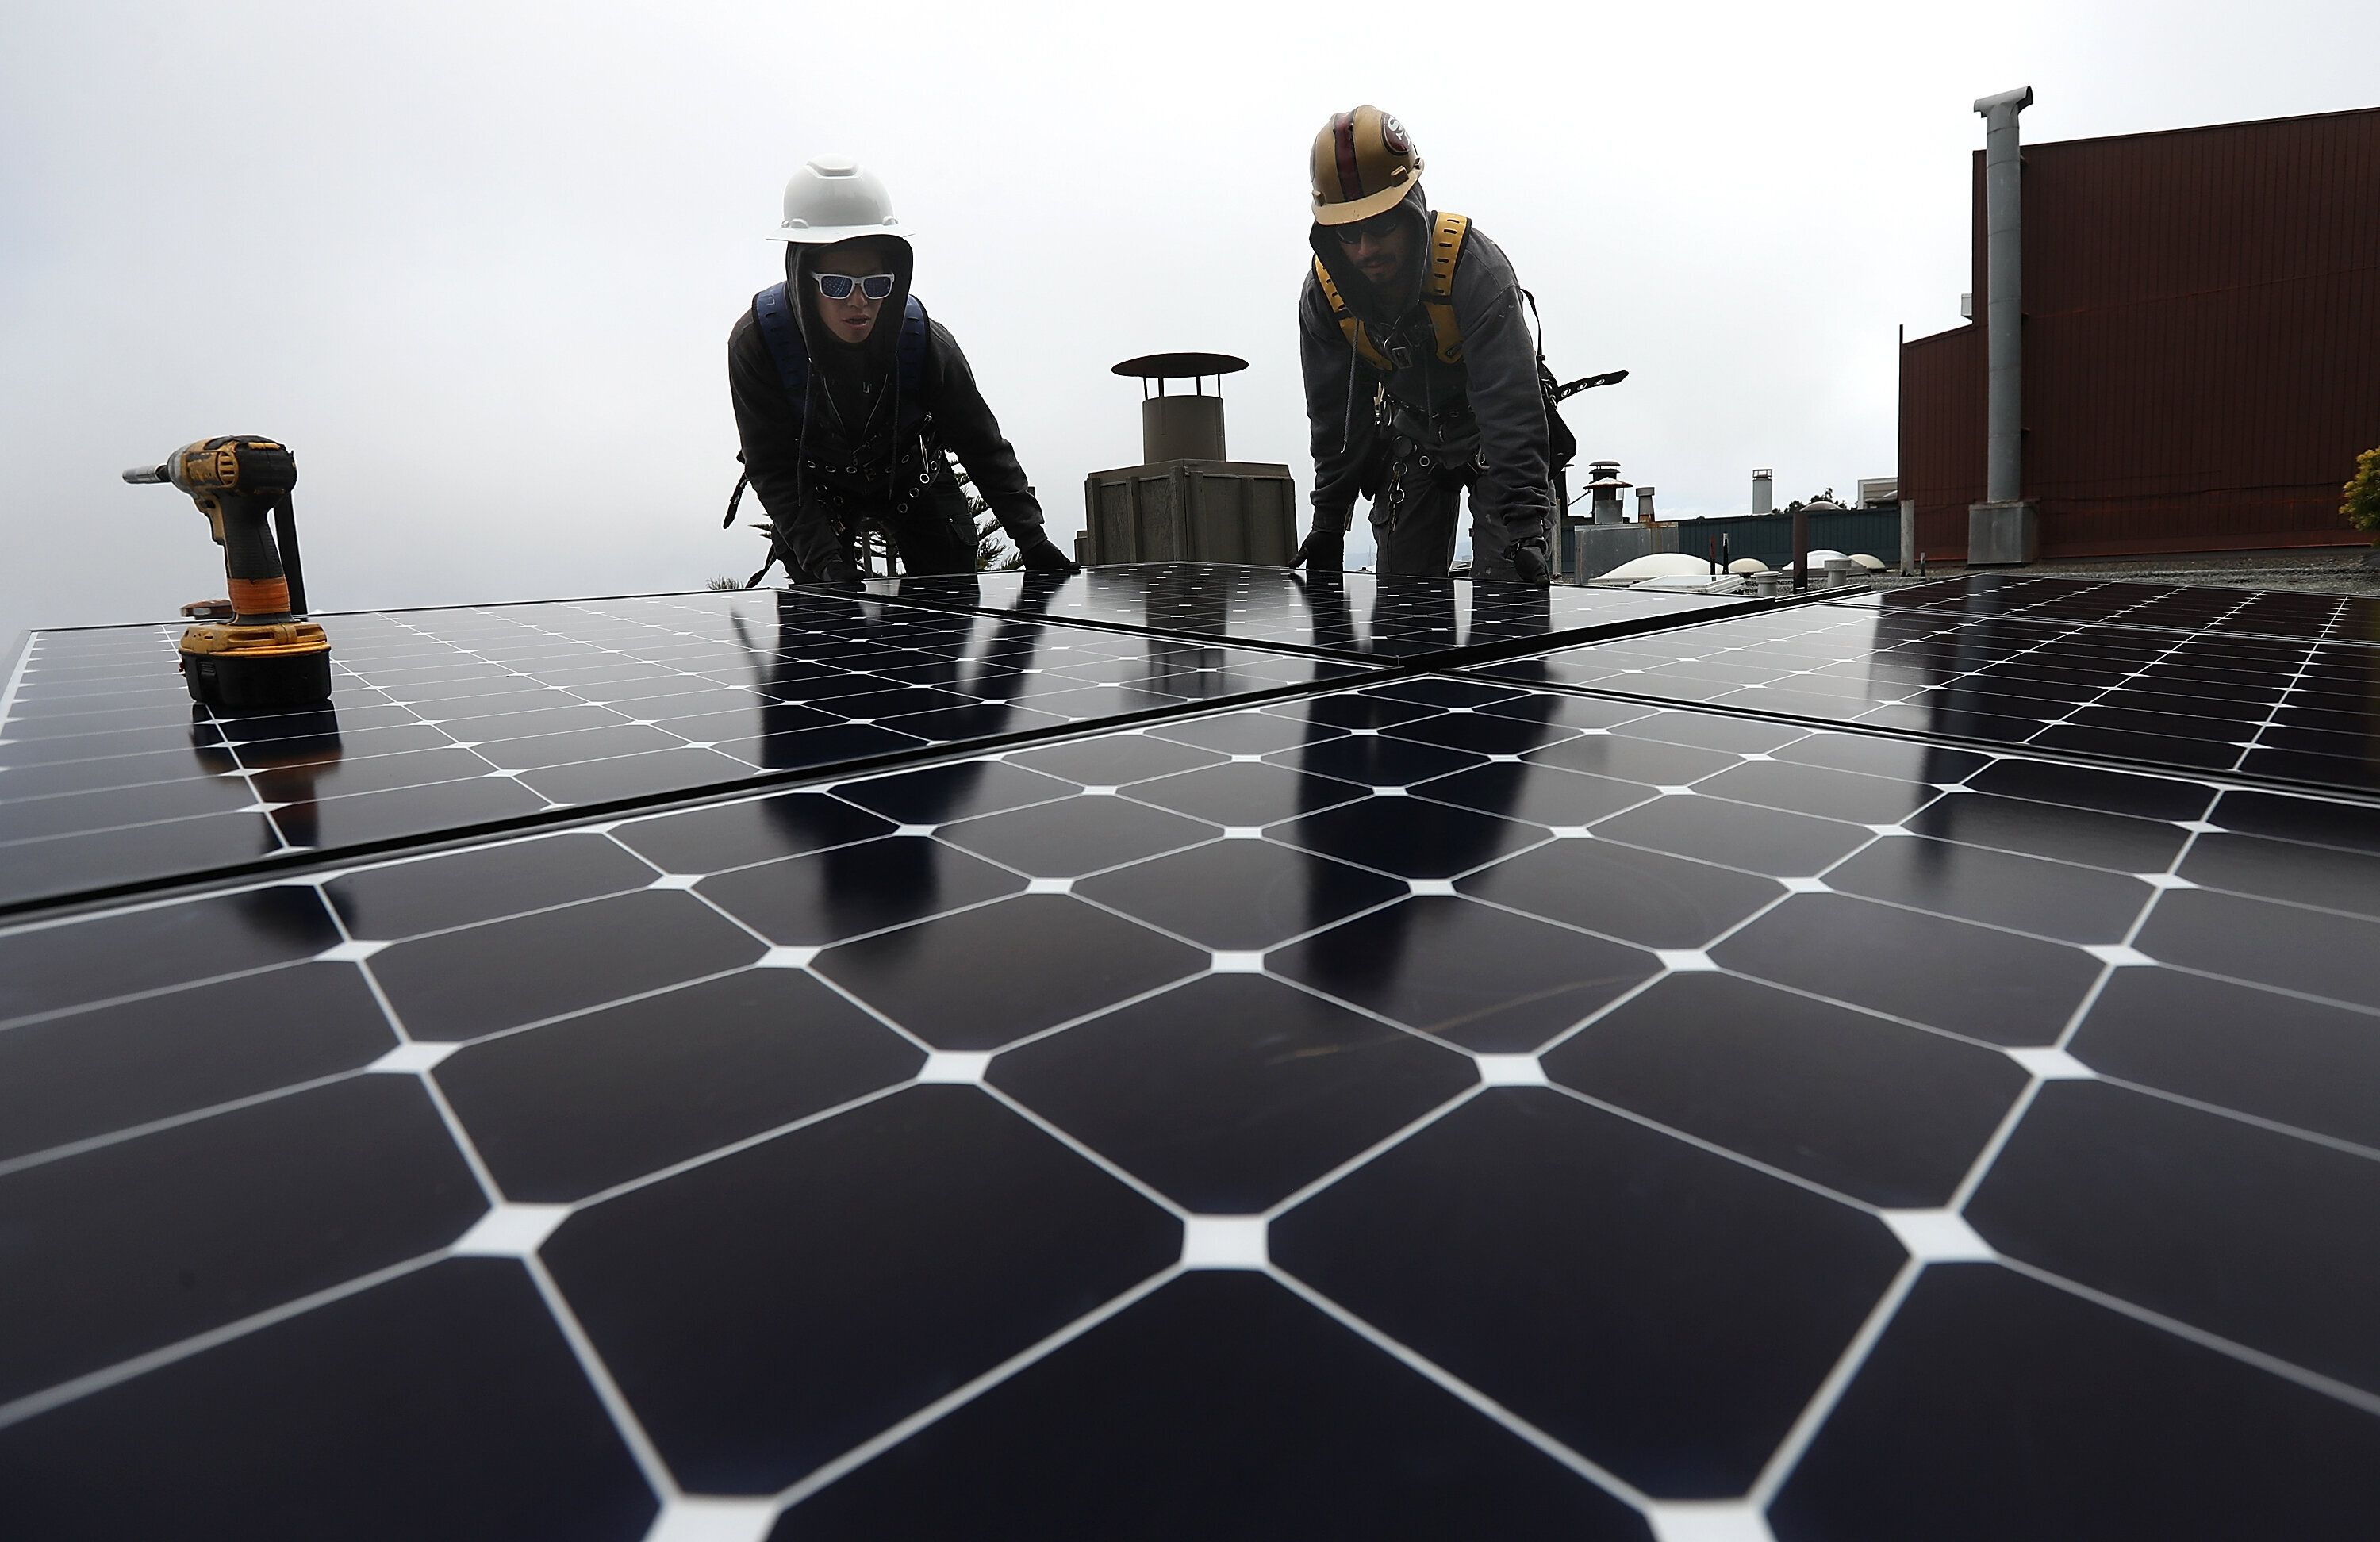 Luminalt solar installers Pam Quan and Walter Morales install solar panels on the roof of a home in San Francisco.